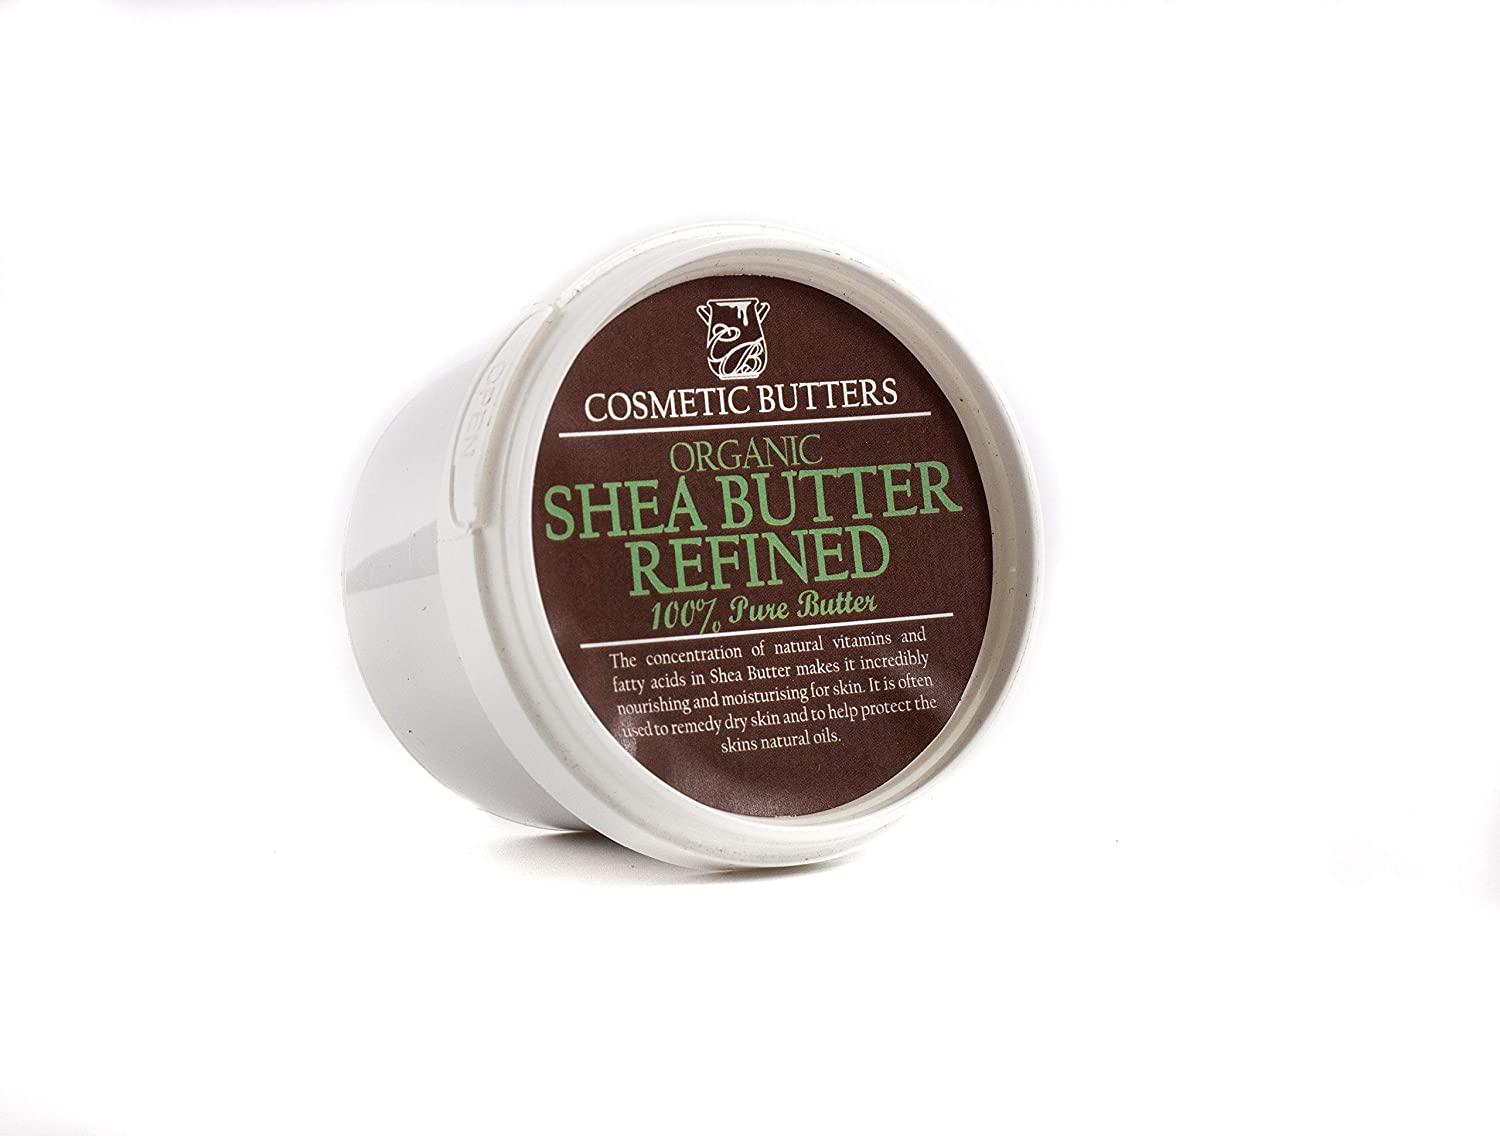 Shea Butter Refined Organic - 100% Pure and Natural - 100g Cosmetic Butters BUTTSHEAREFORG100